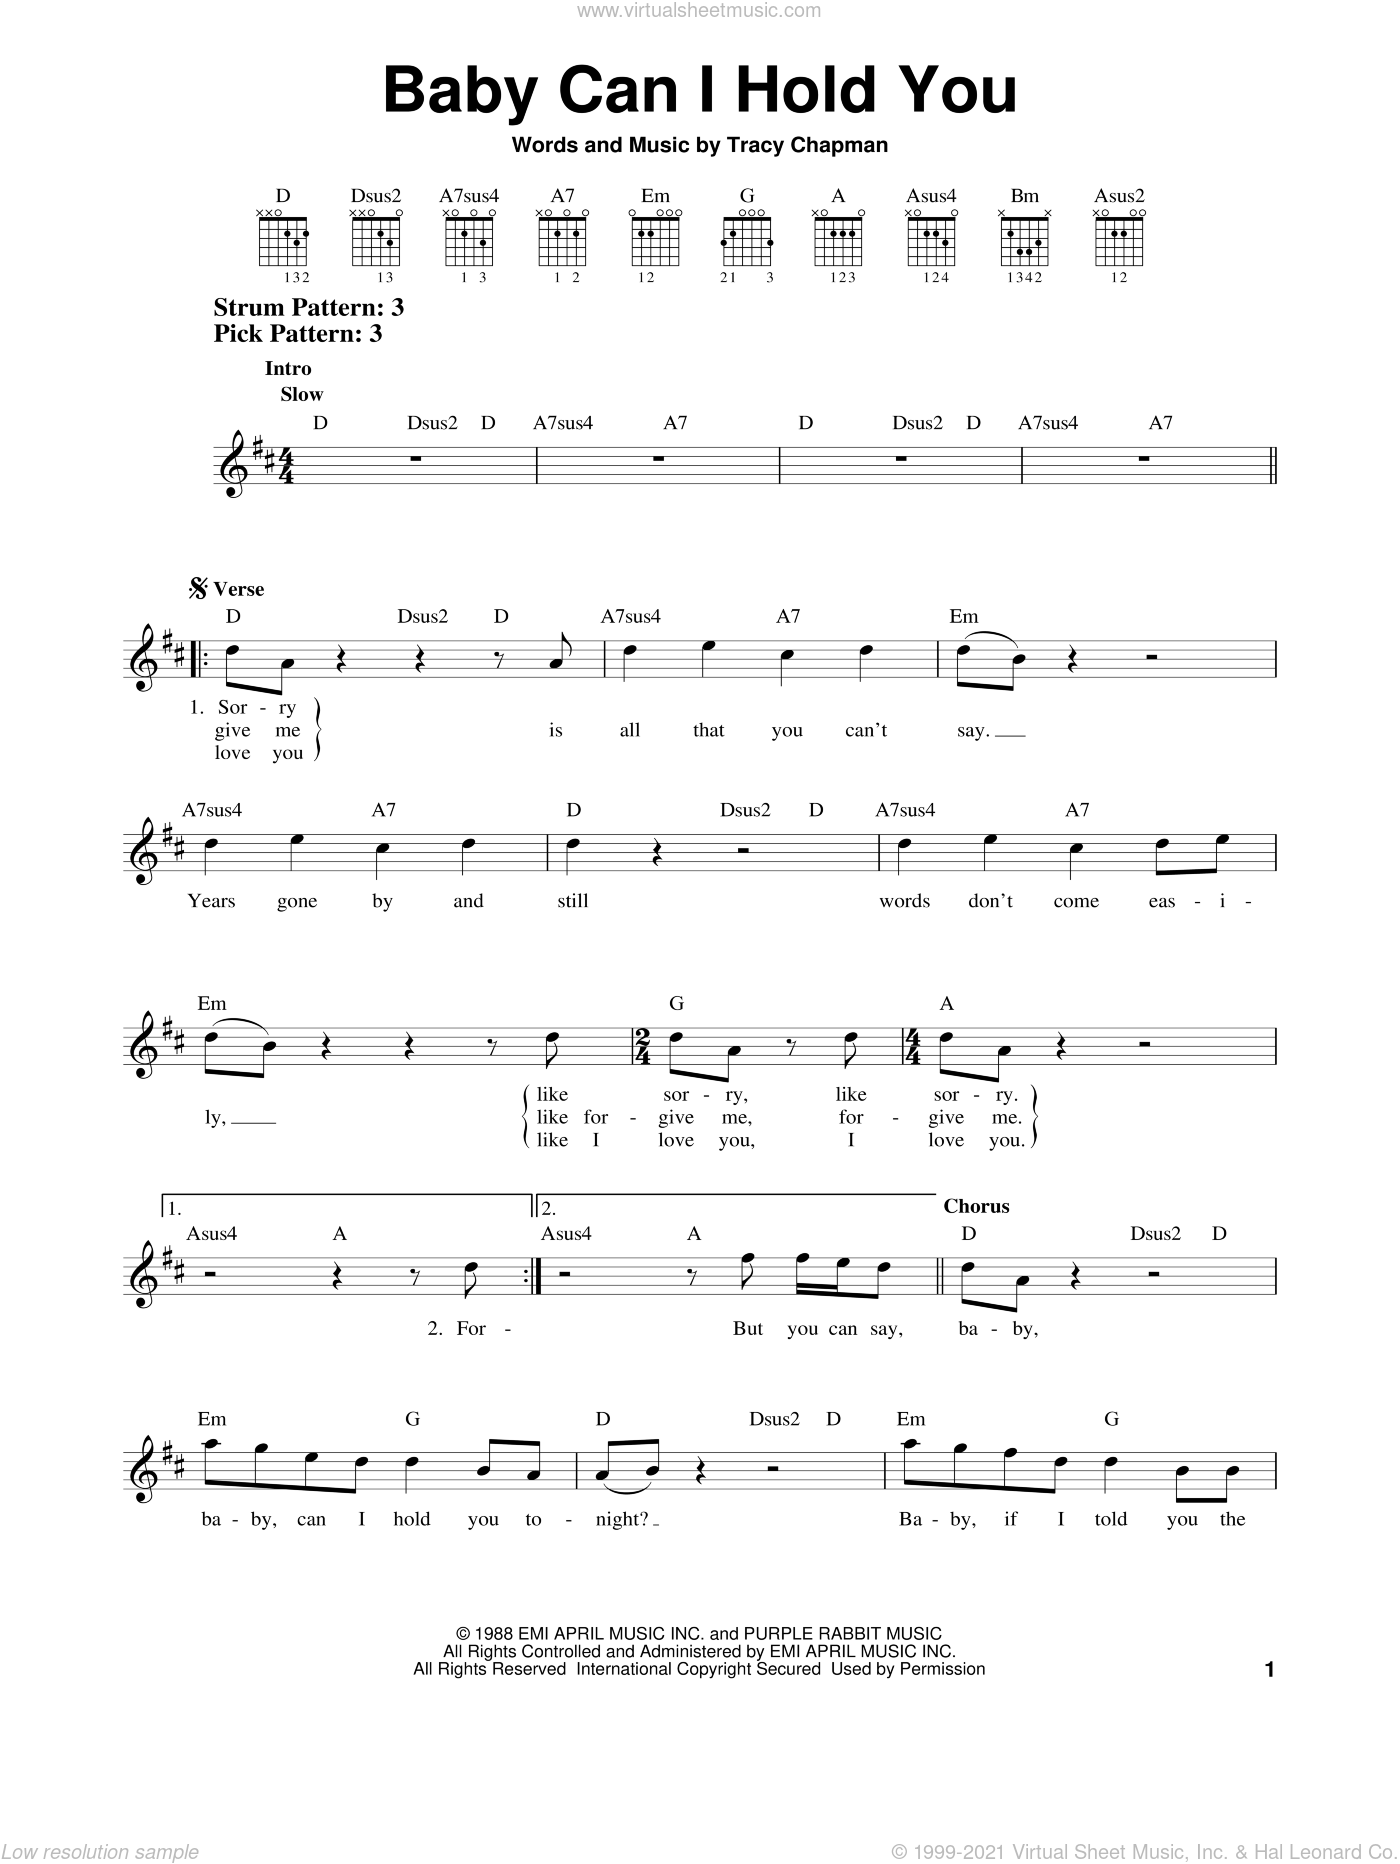 Baby Can I Hold You sheet music for guitar solo (chords) by Tracy Chapman, easy guitar (chords). Score Image Preview.